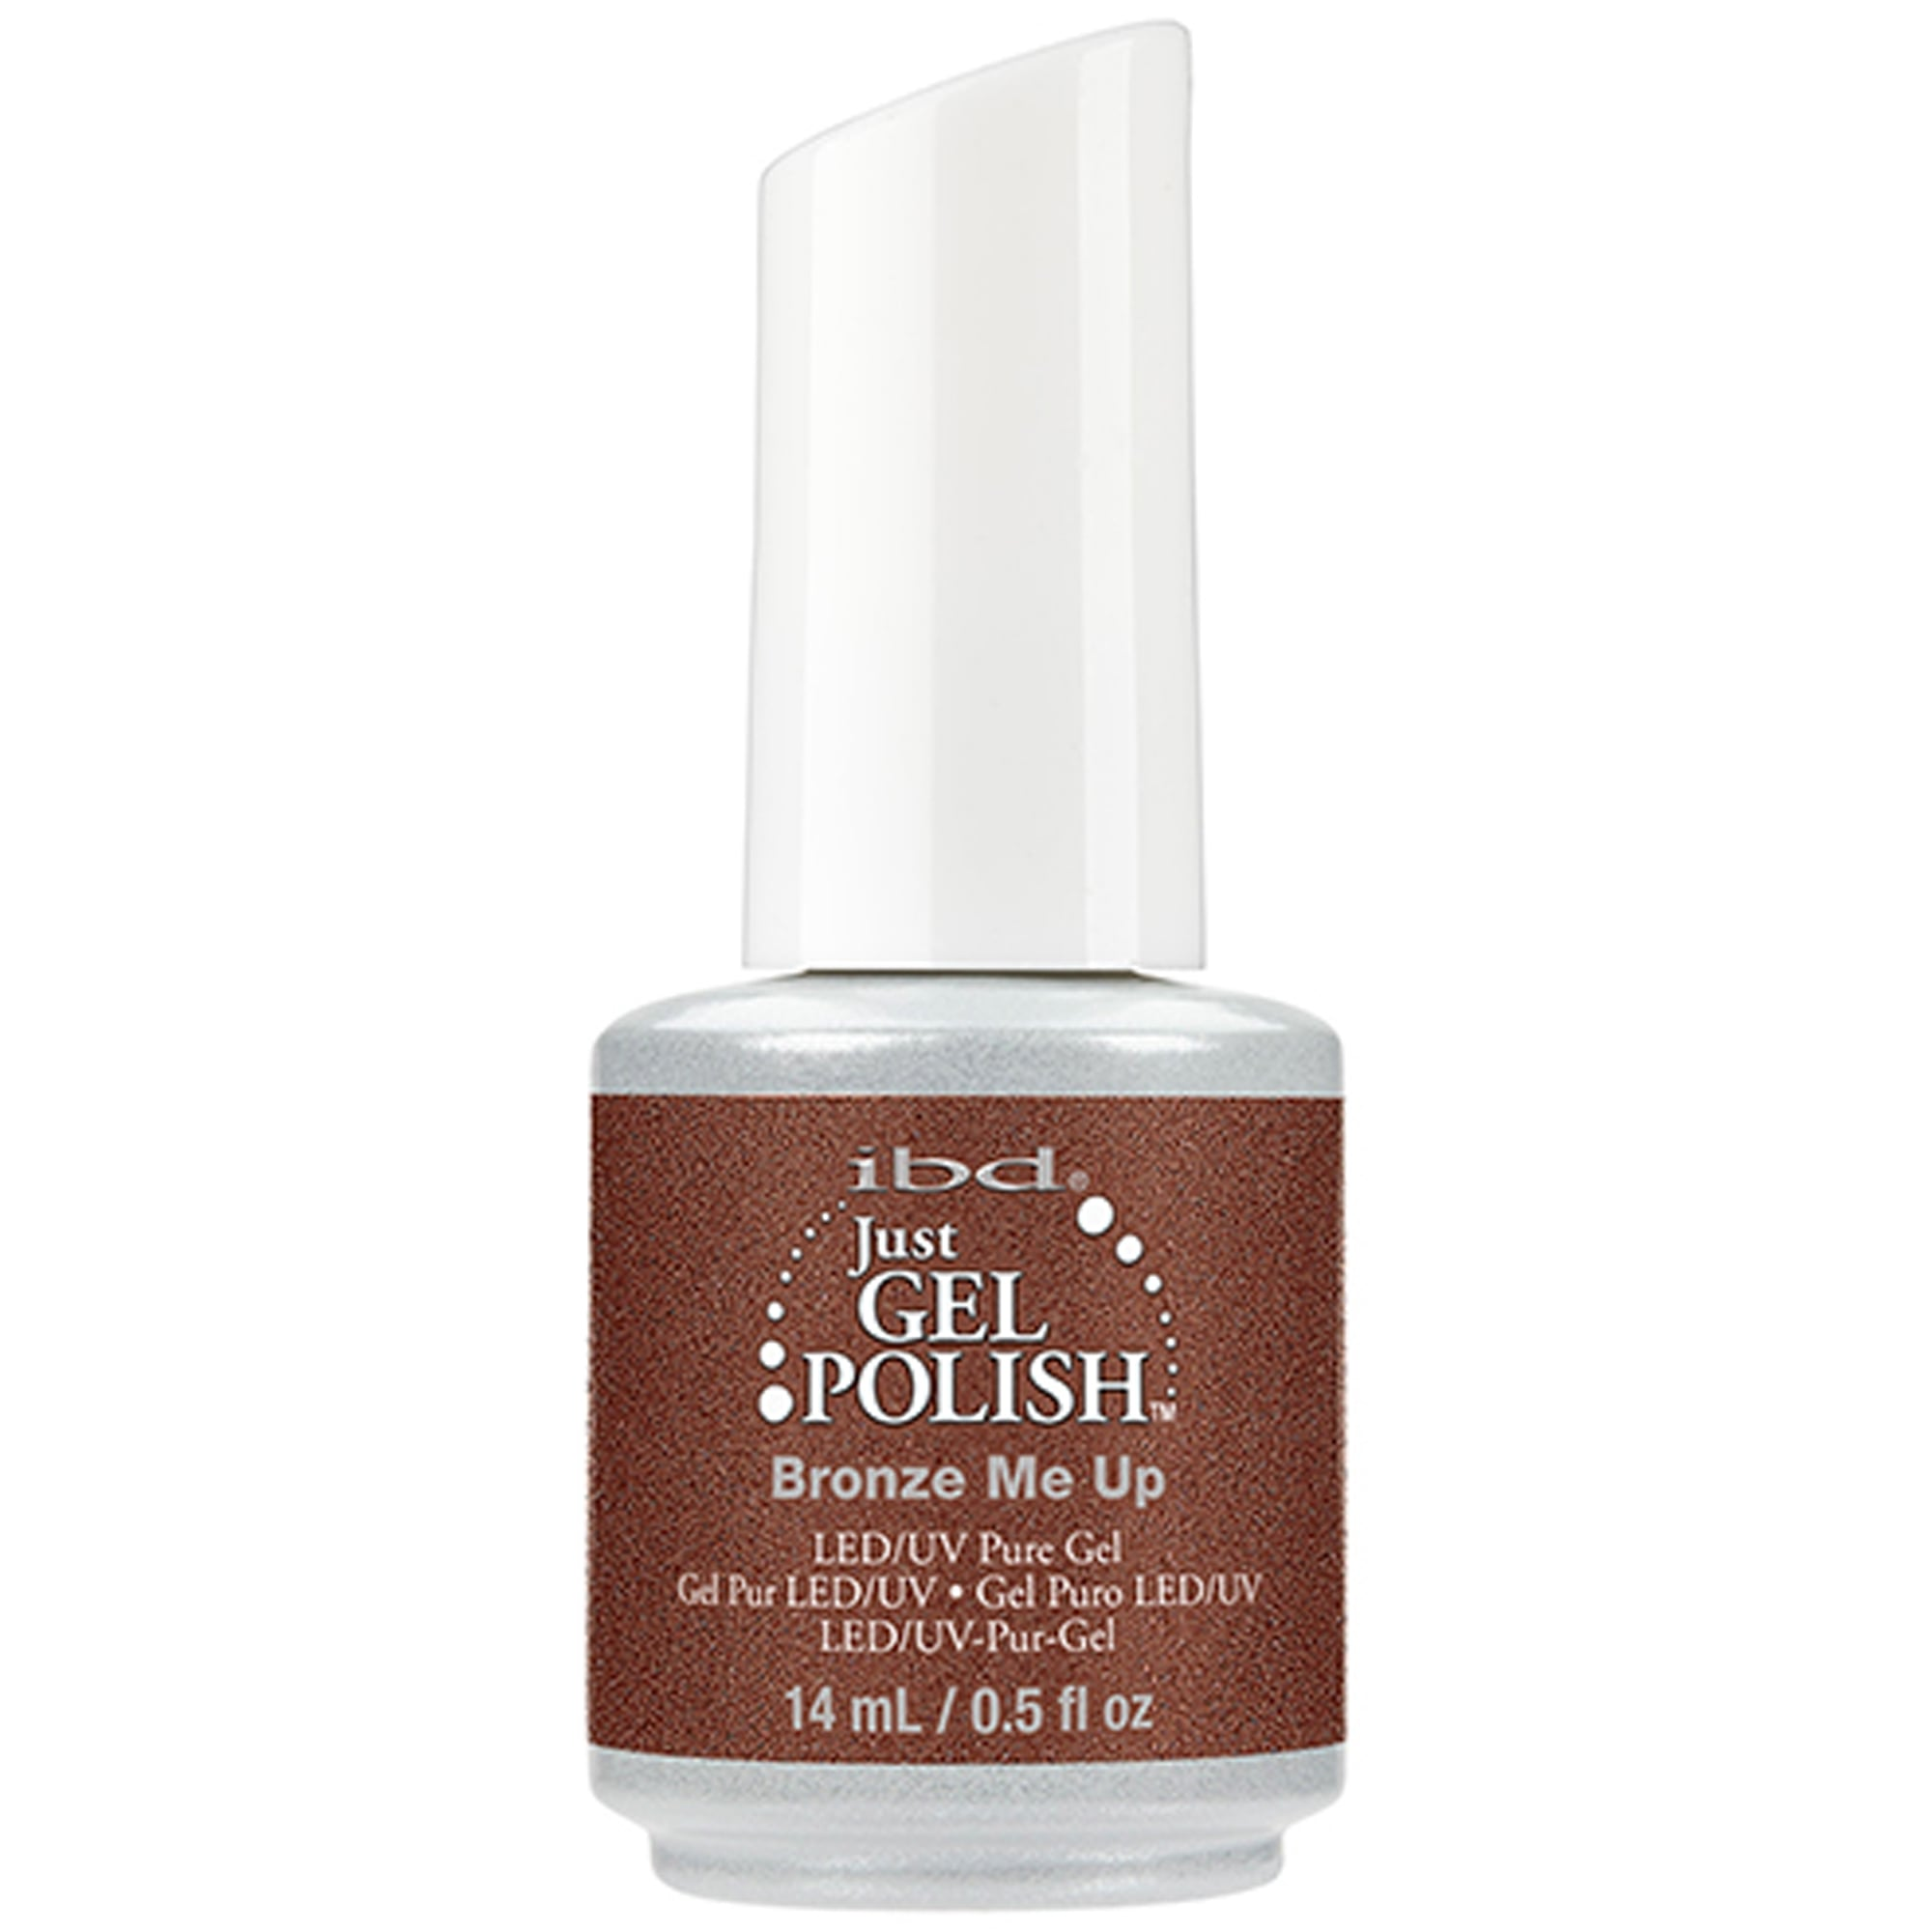 ibd-pure-led-uv-just-gel-polish-bronze-me-up-14ml-1314055-p23713-95258_zoom